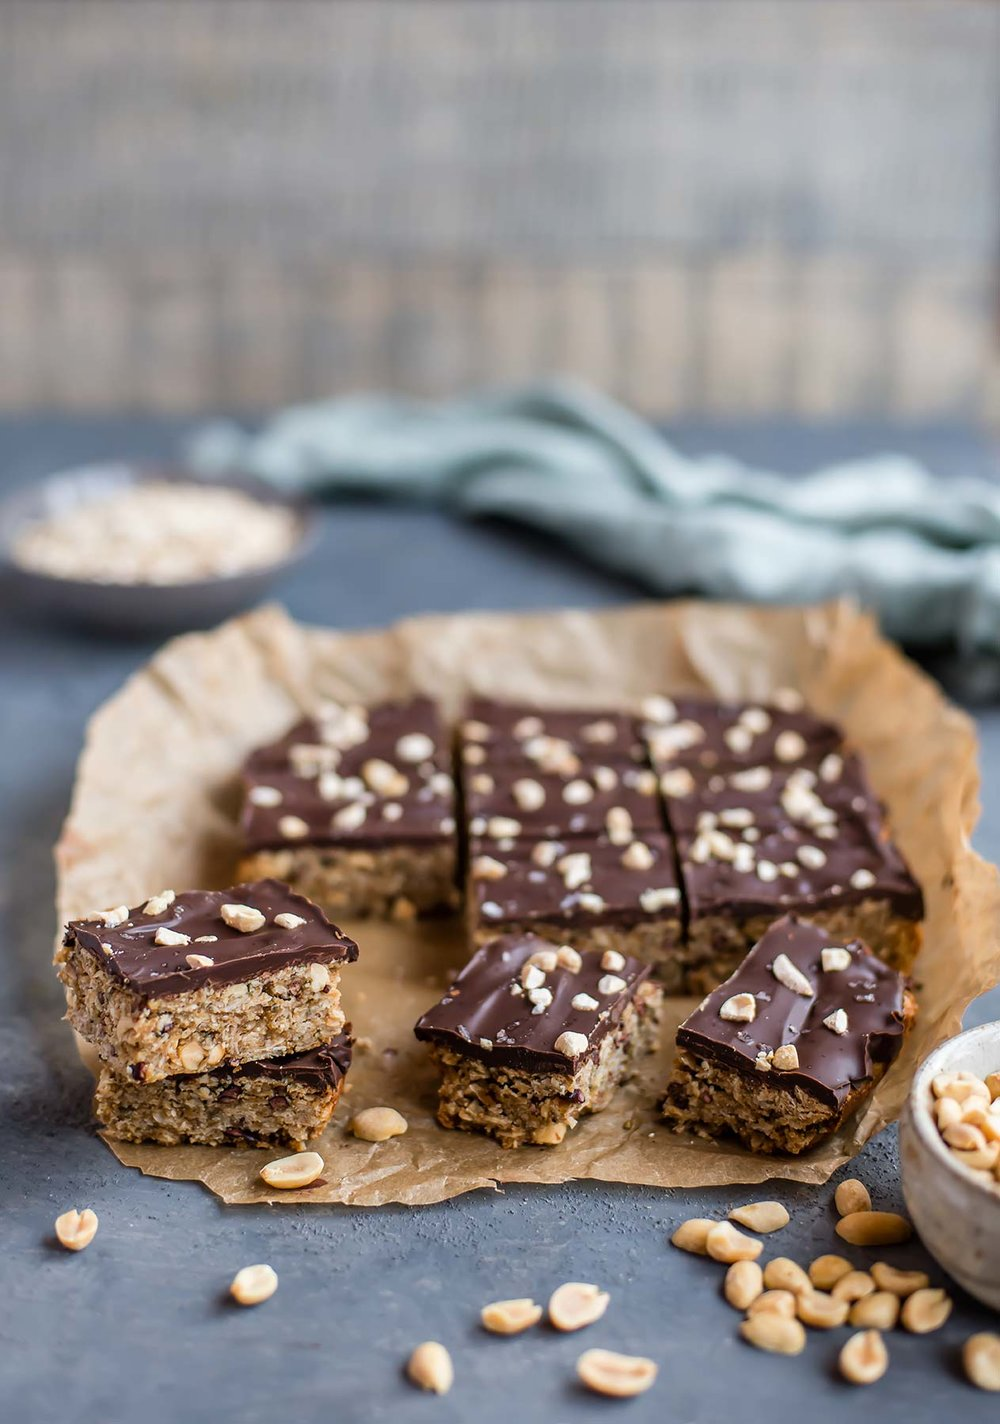 Peanut Butter Chocolate Oat Bars with Hemp & Cacao Nibs